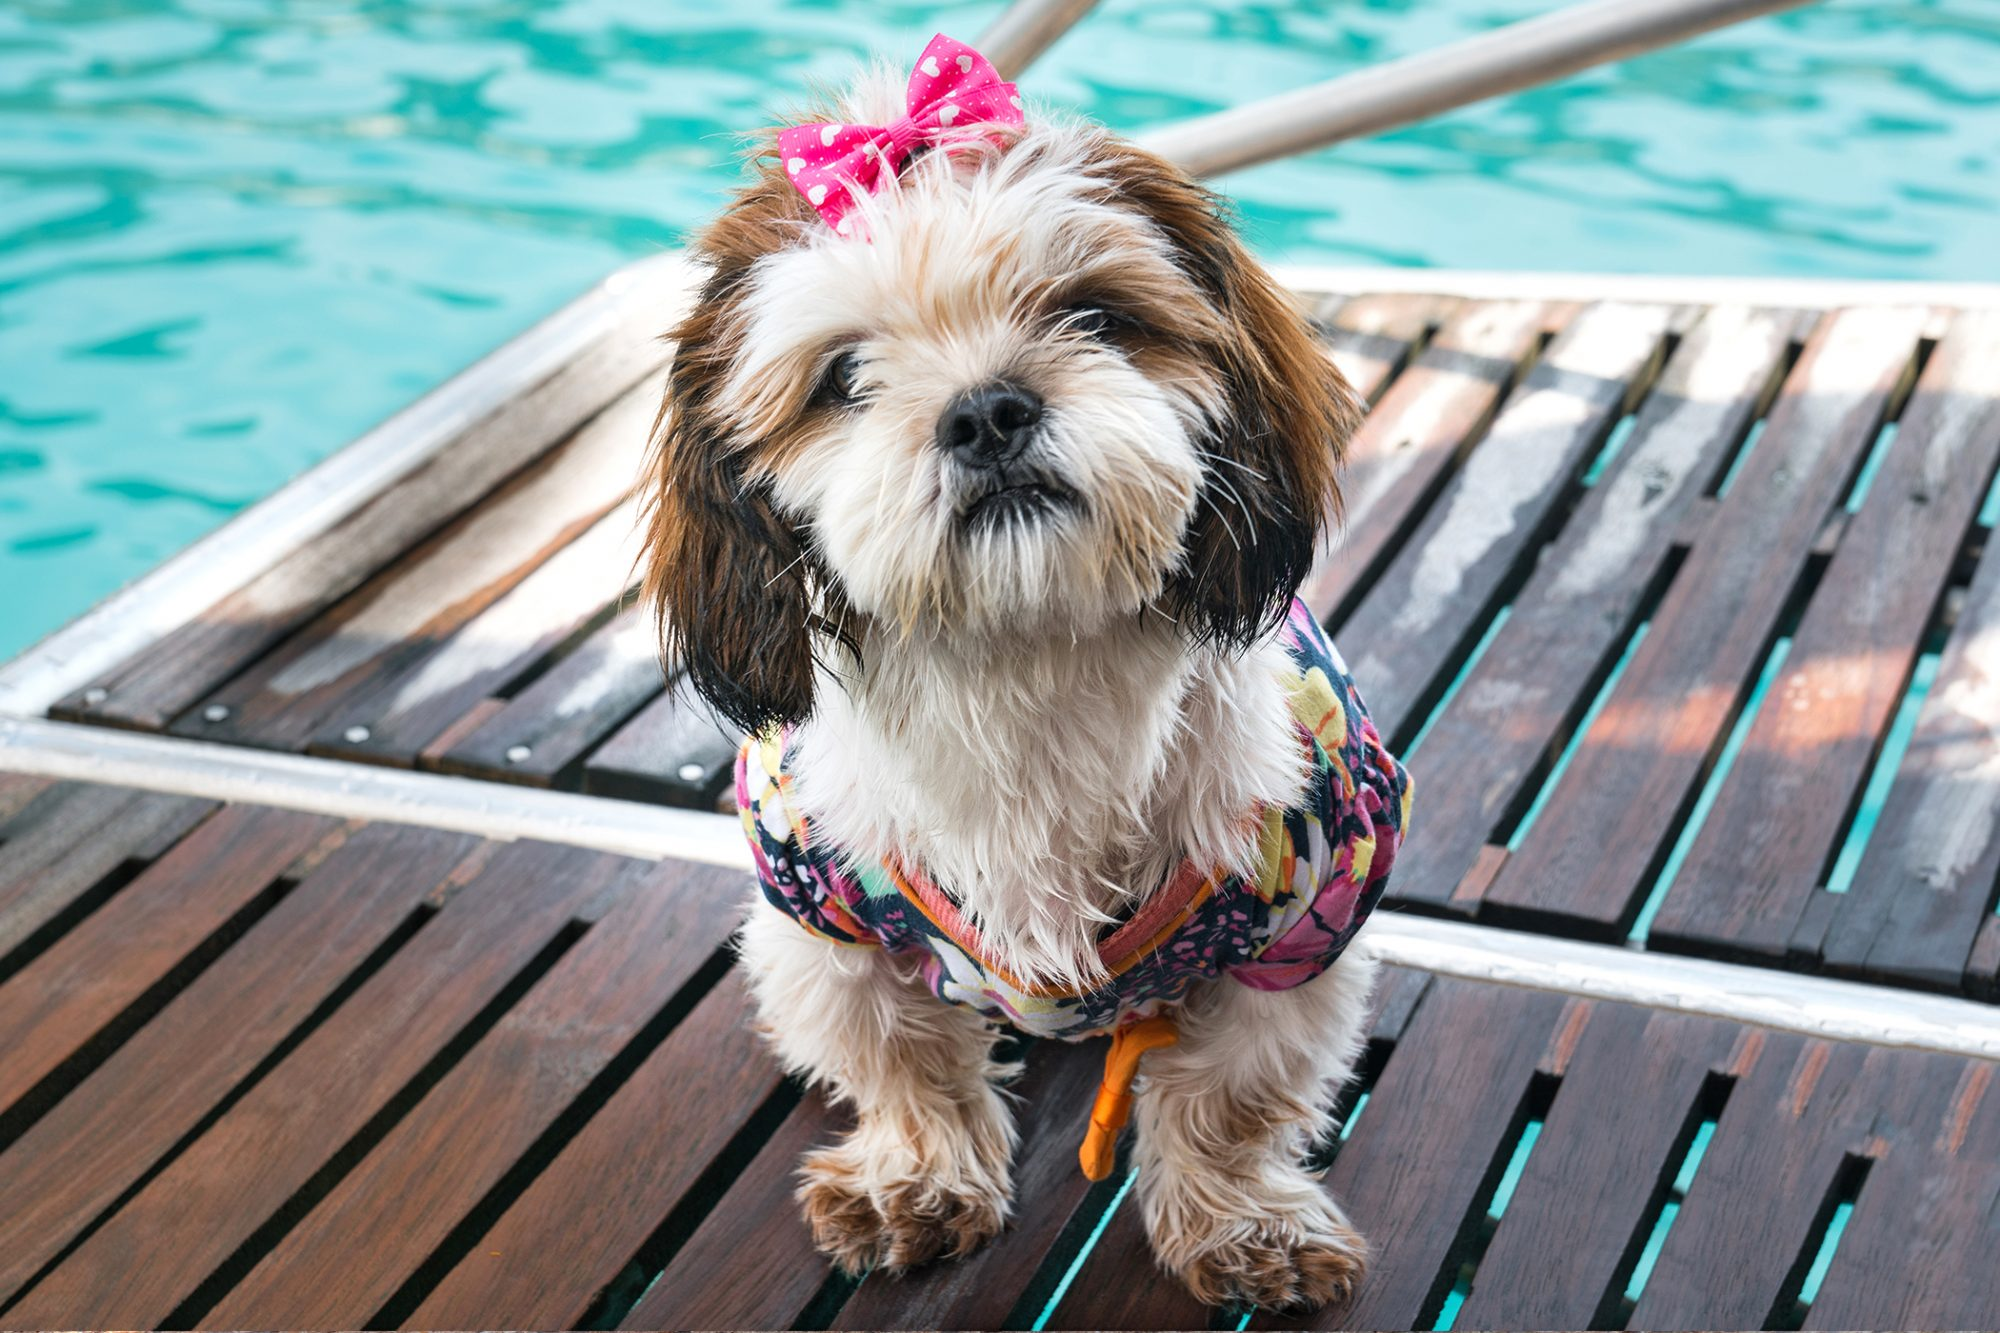 White shih-poo with brown ears sits near pool facing camera